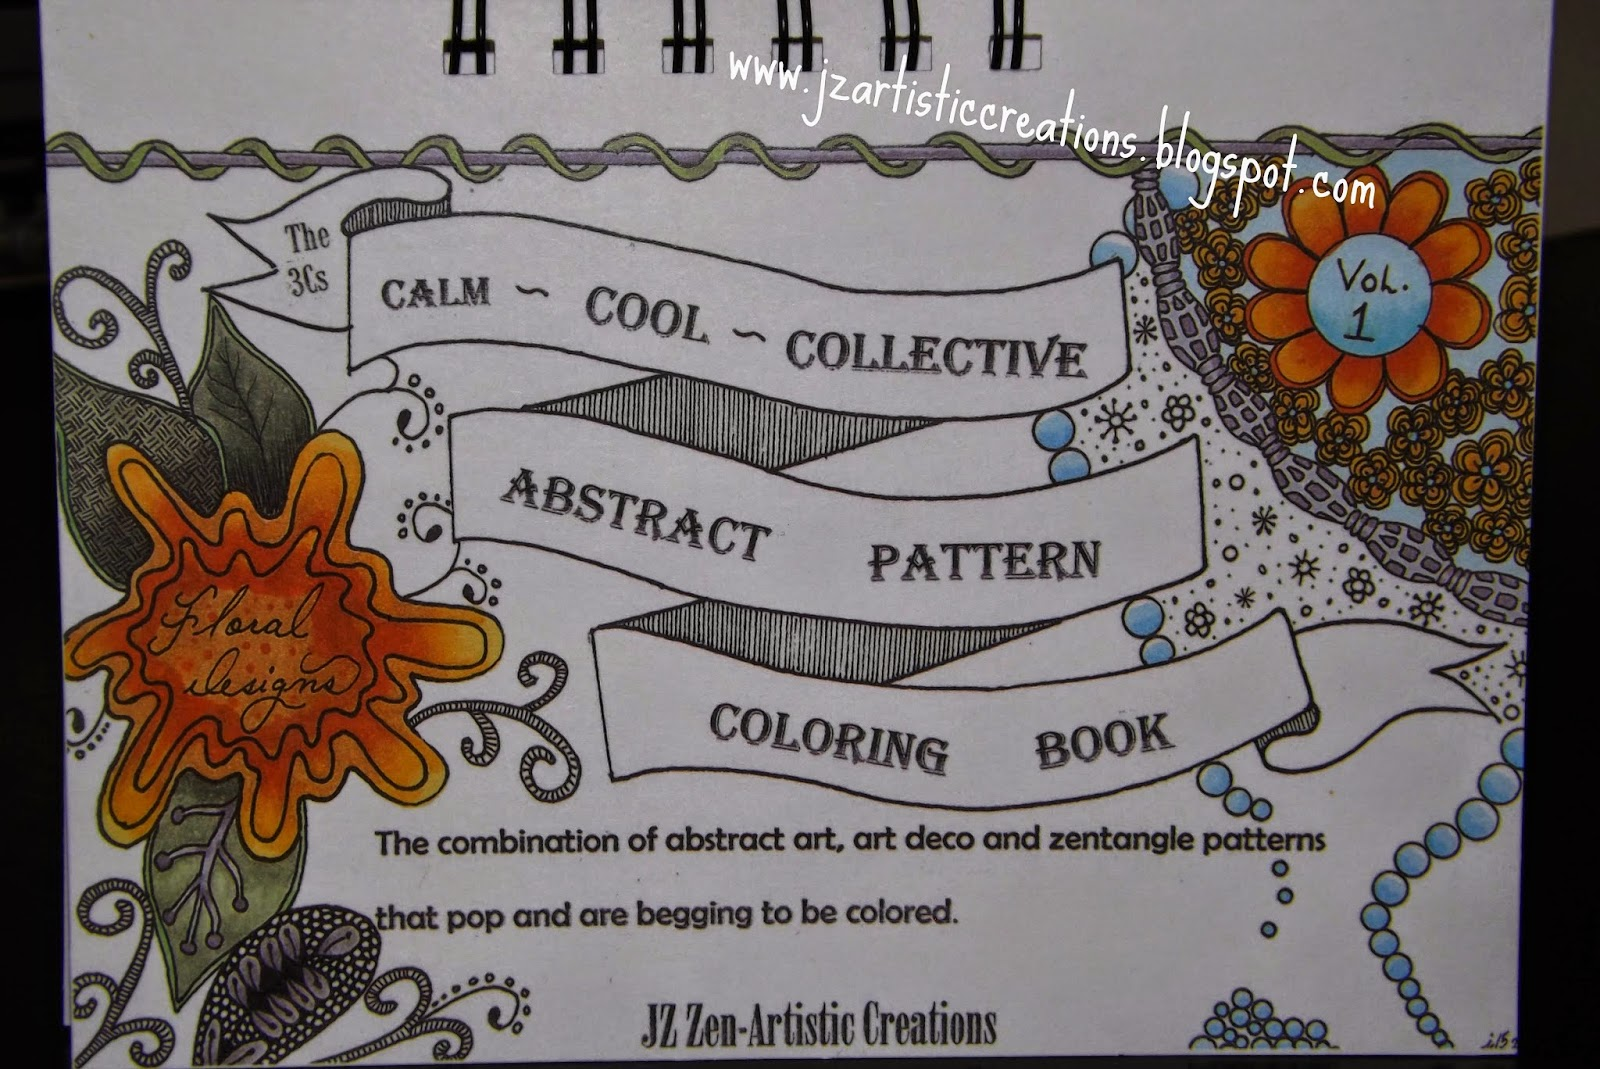 Presenting My Doodle Zentangle Coloring Book Floral Designs Vol1 Where All Had Been Hand Drawn And Not Computer Generated